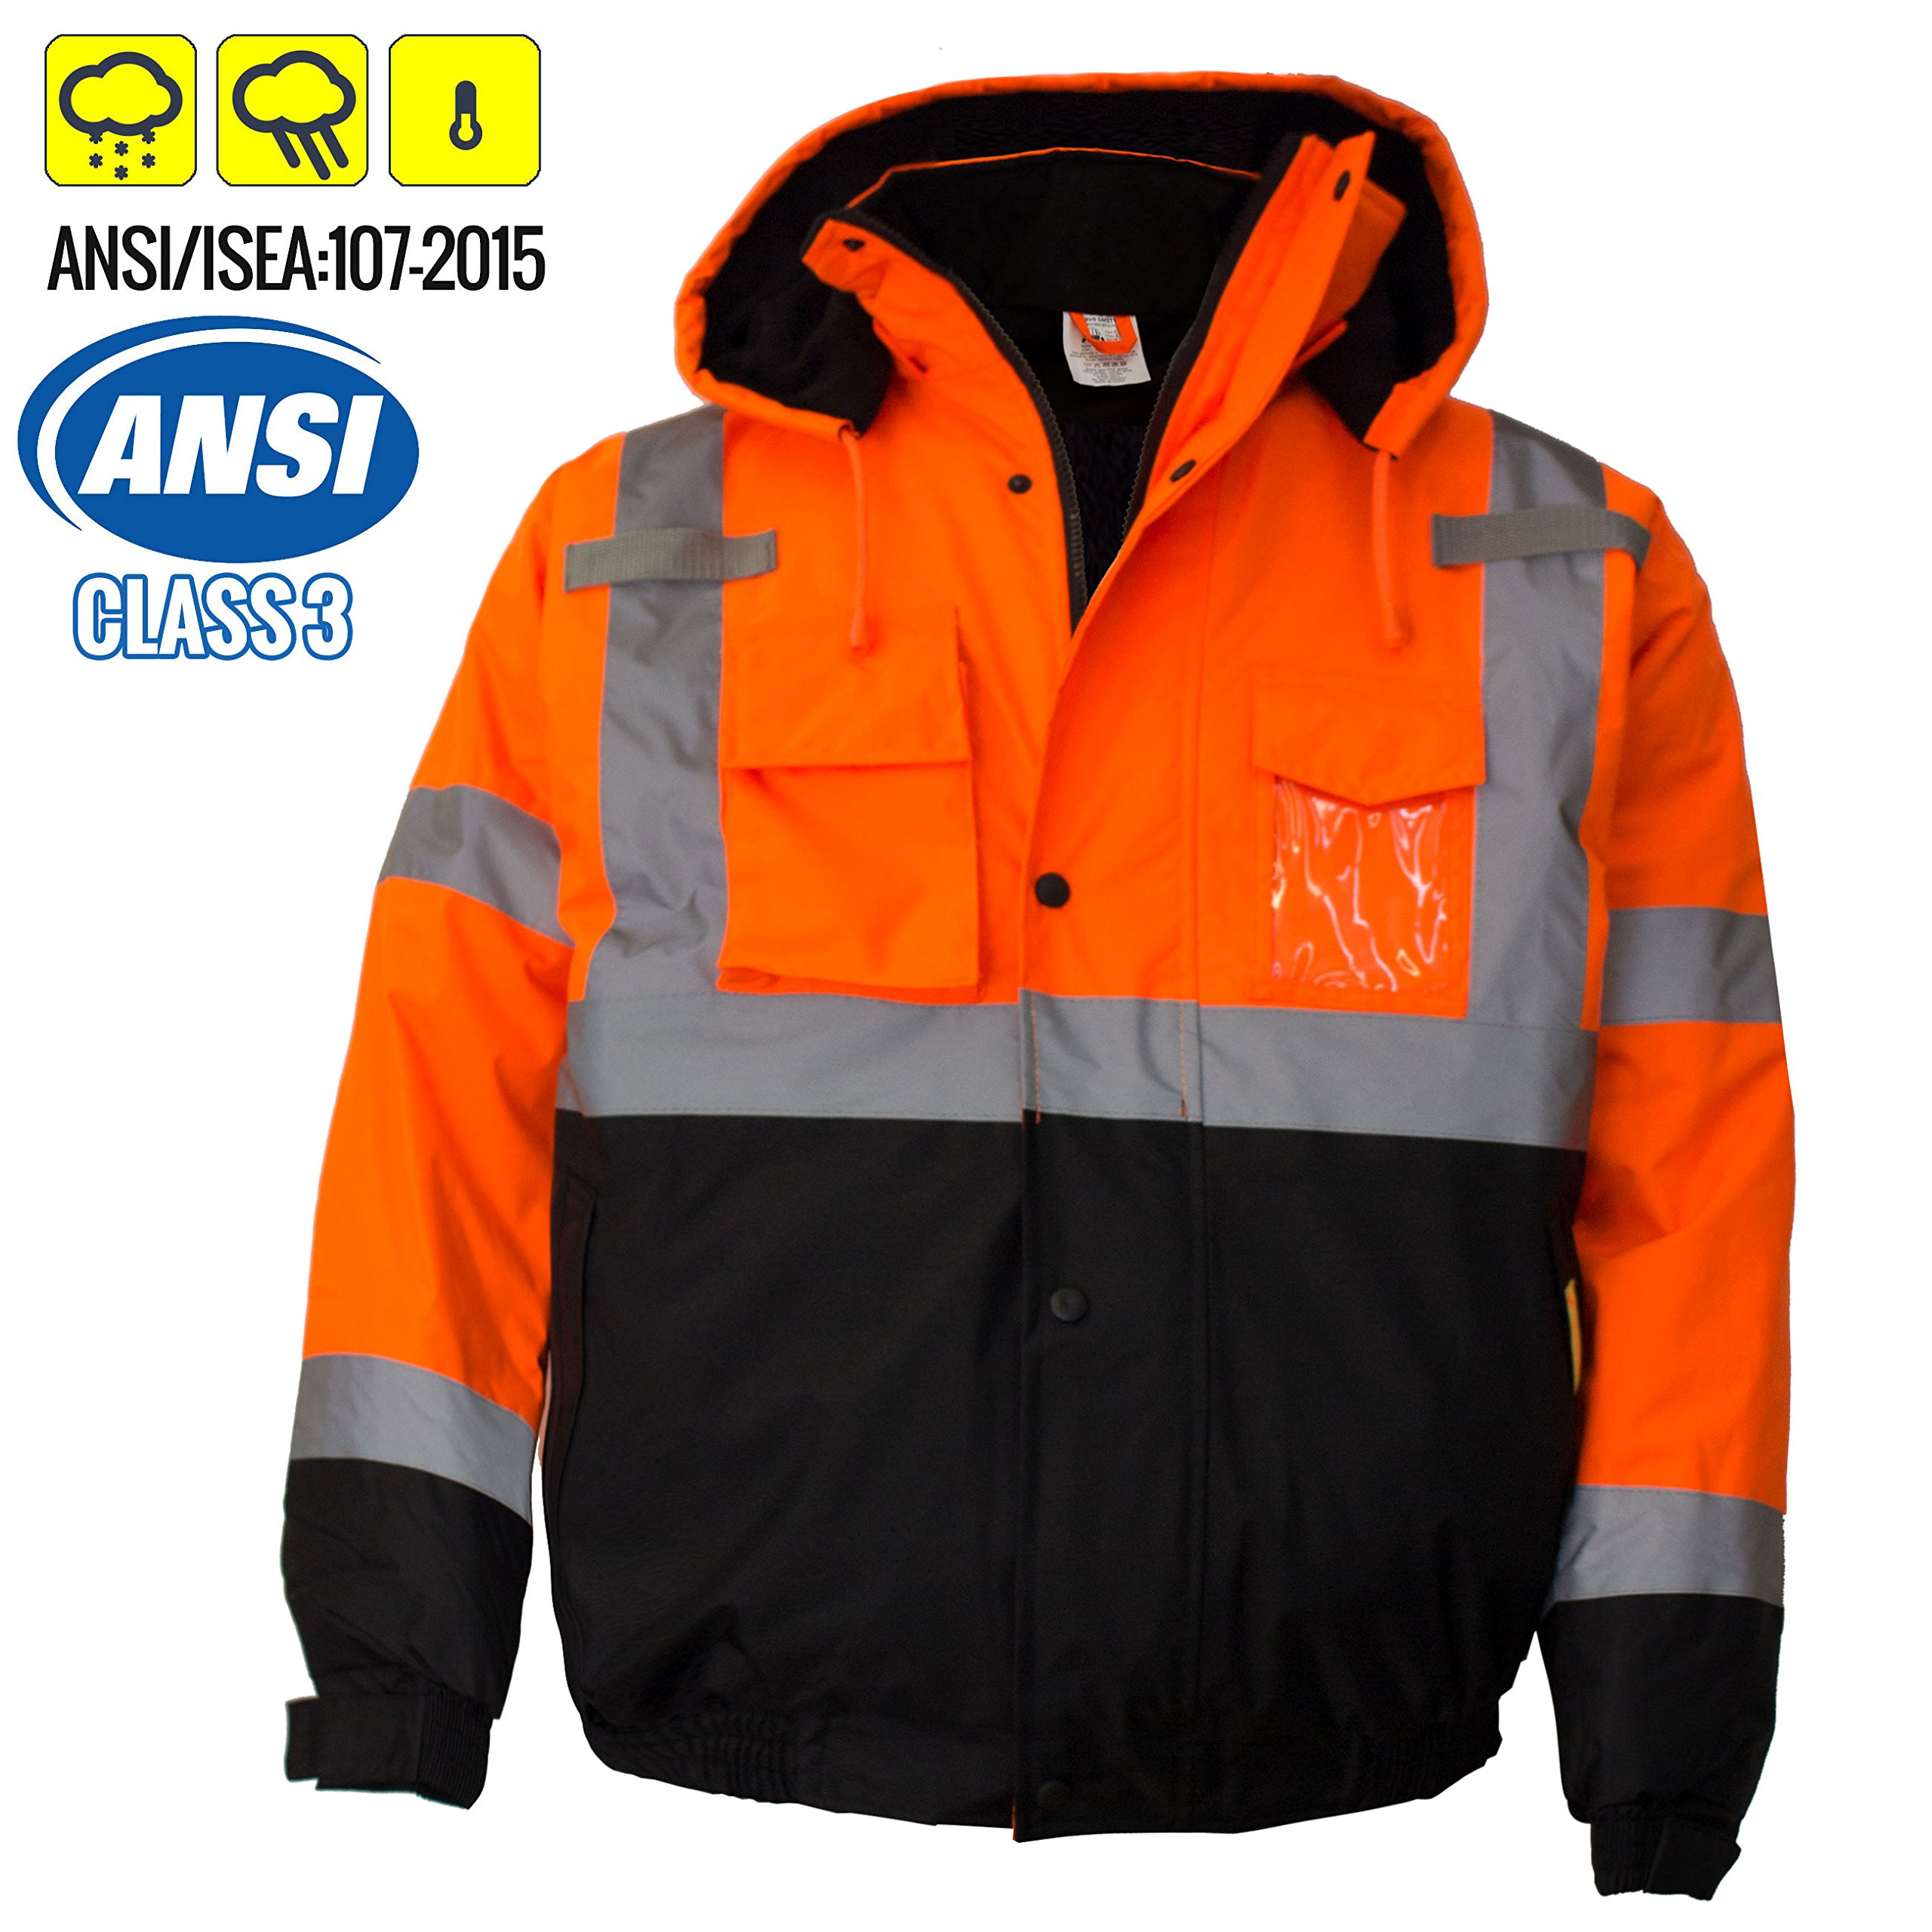 New York Hi-Viz Workwear WJ9011-L Men's ANSI Class 3 High Visibility Bomber Safety Jacket, Waterproof (Large, Orange) by New York Hi-Viz Workwear (Image #1)